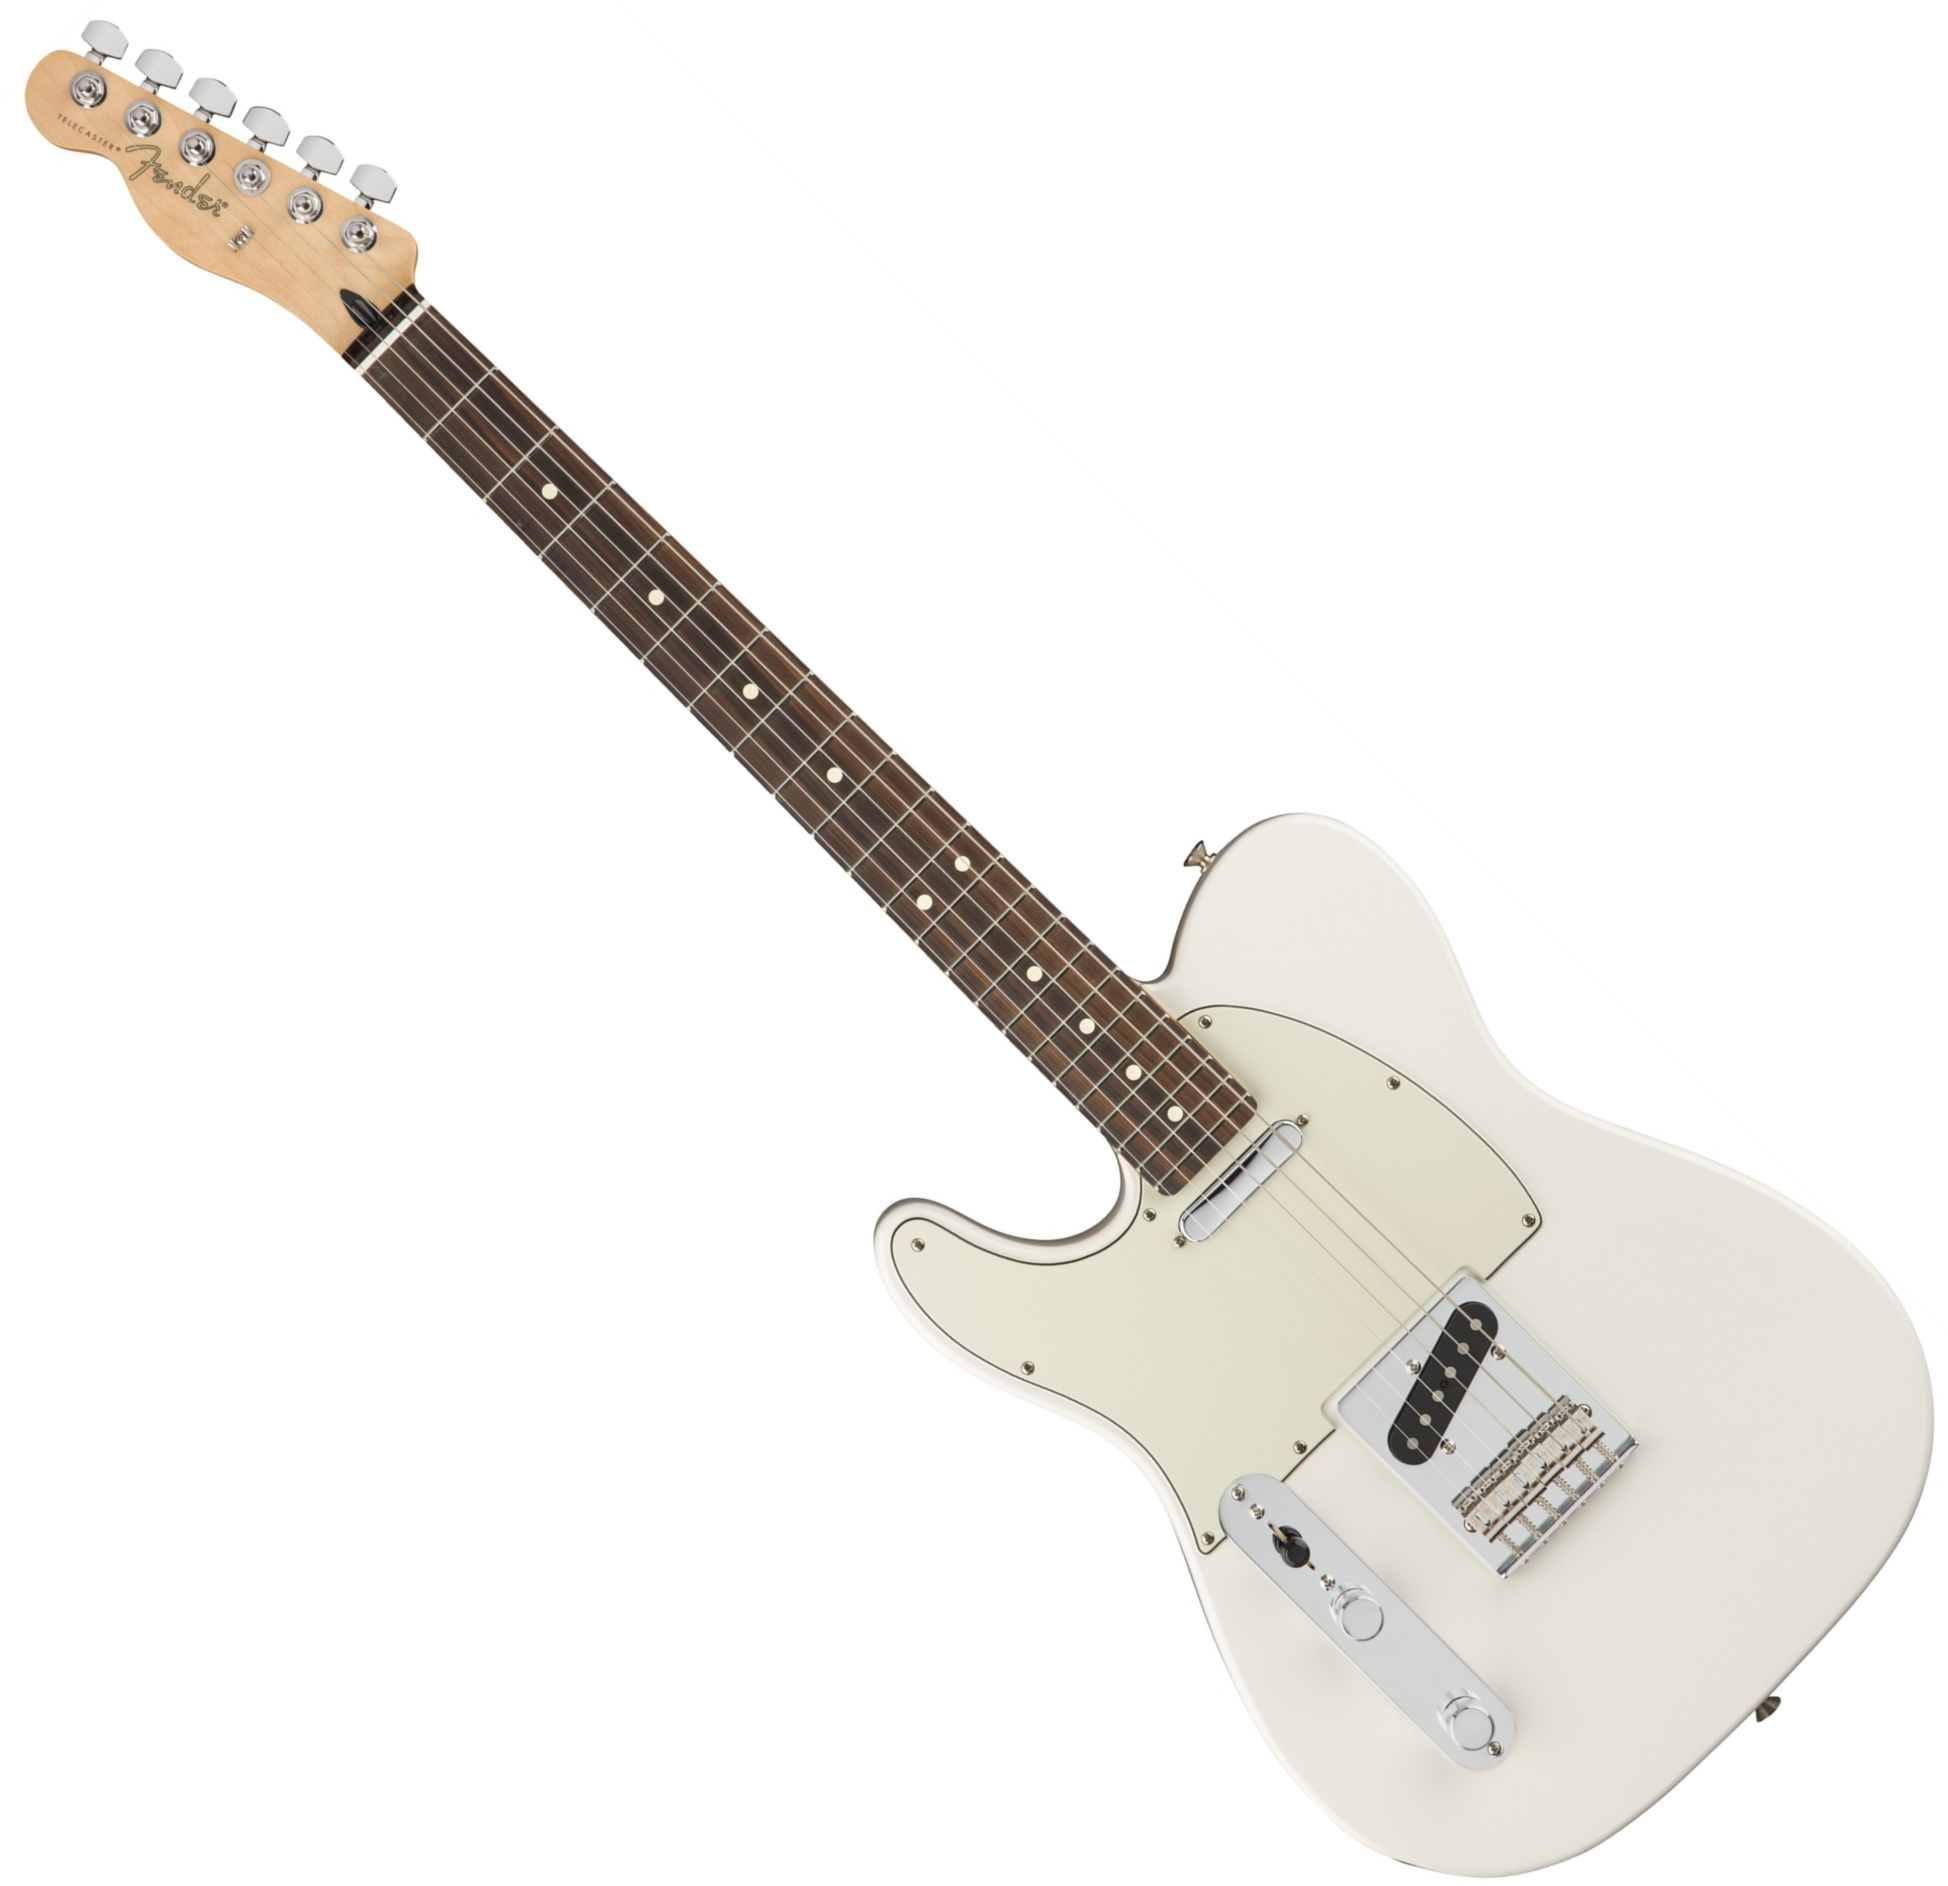 5cd122e62fed4 Guitare électrique solid body Fender Player Telecaster Gaucher (MEX ...